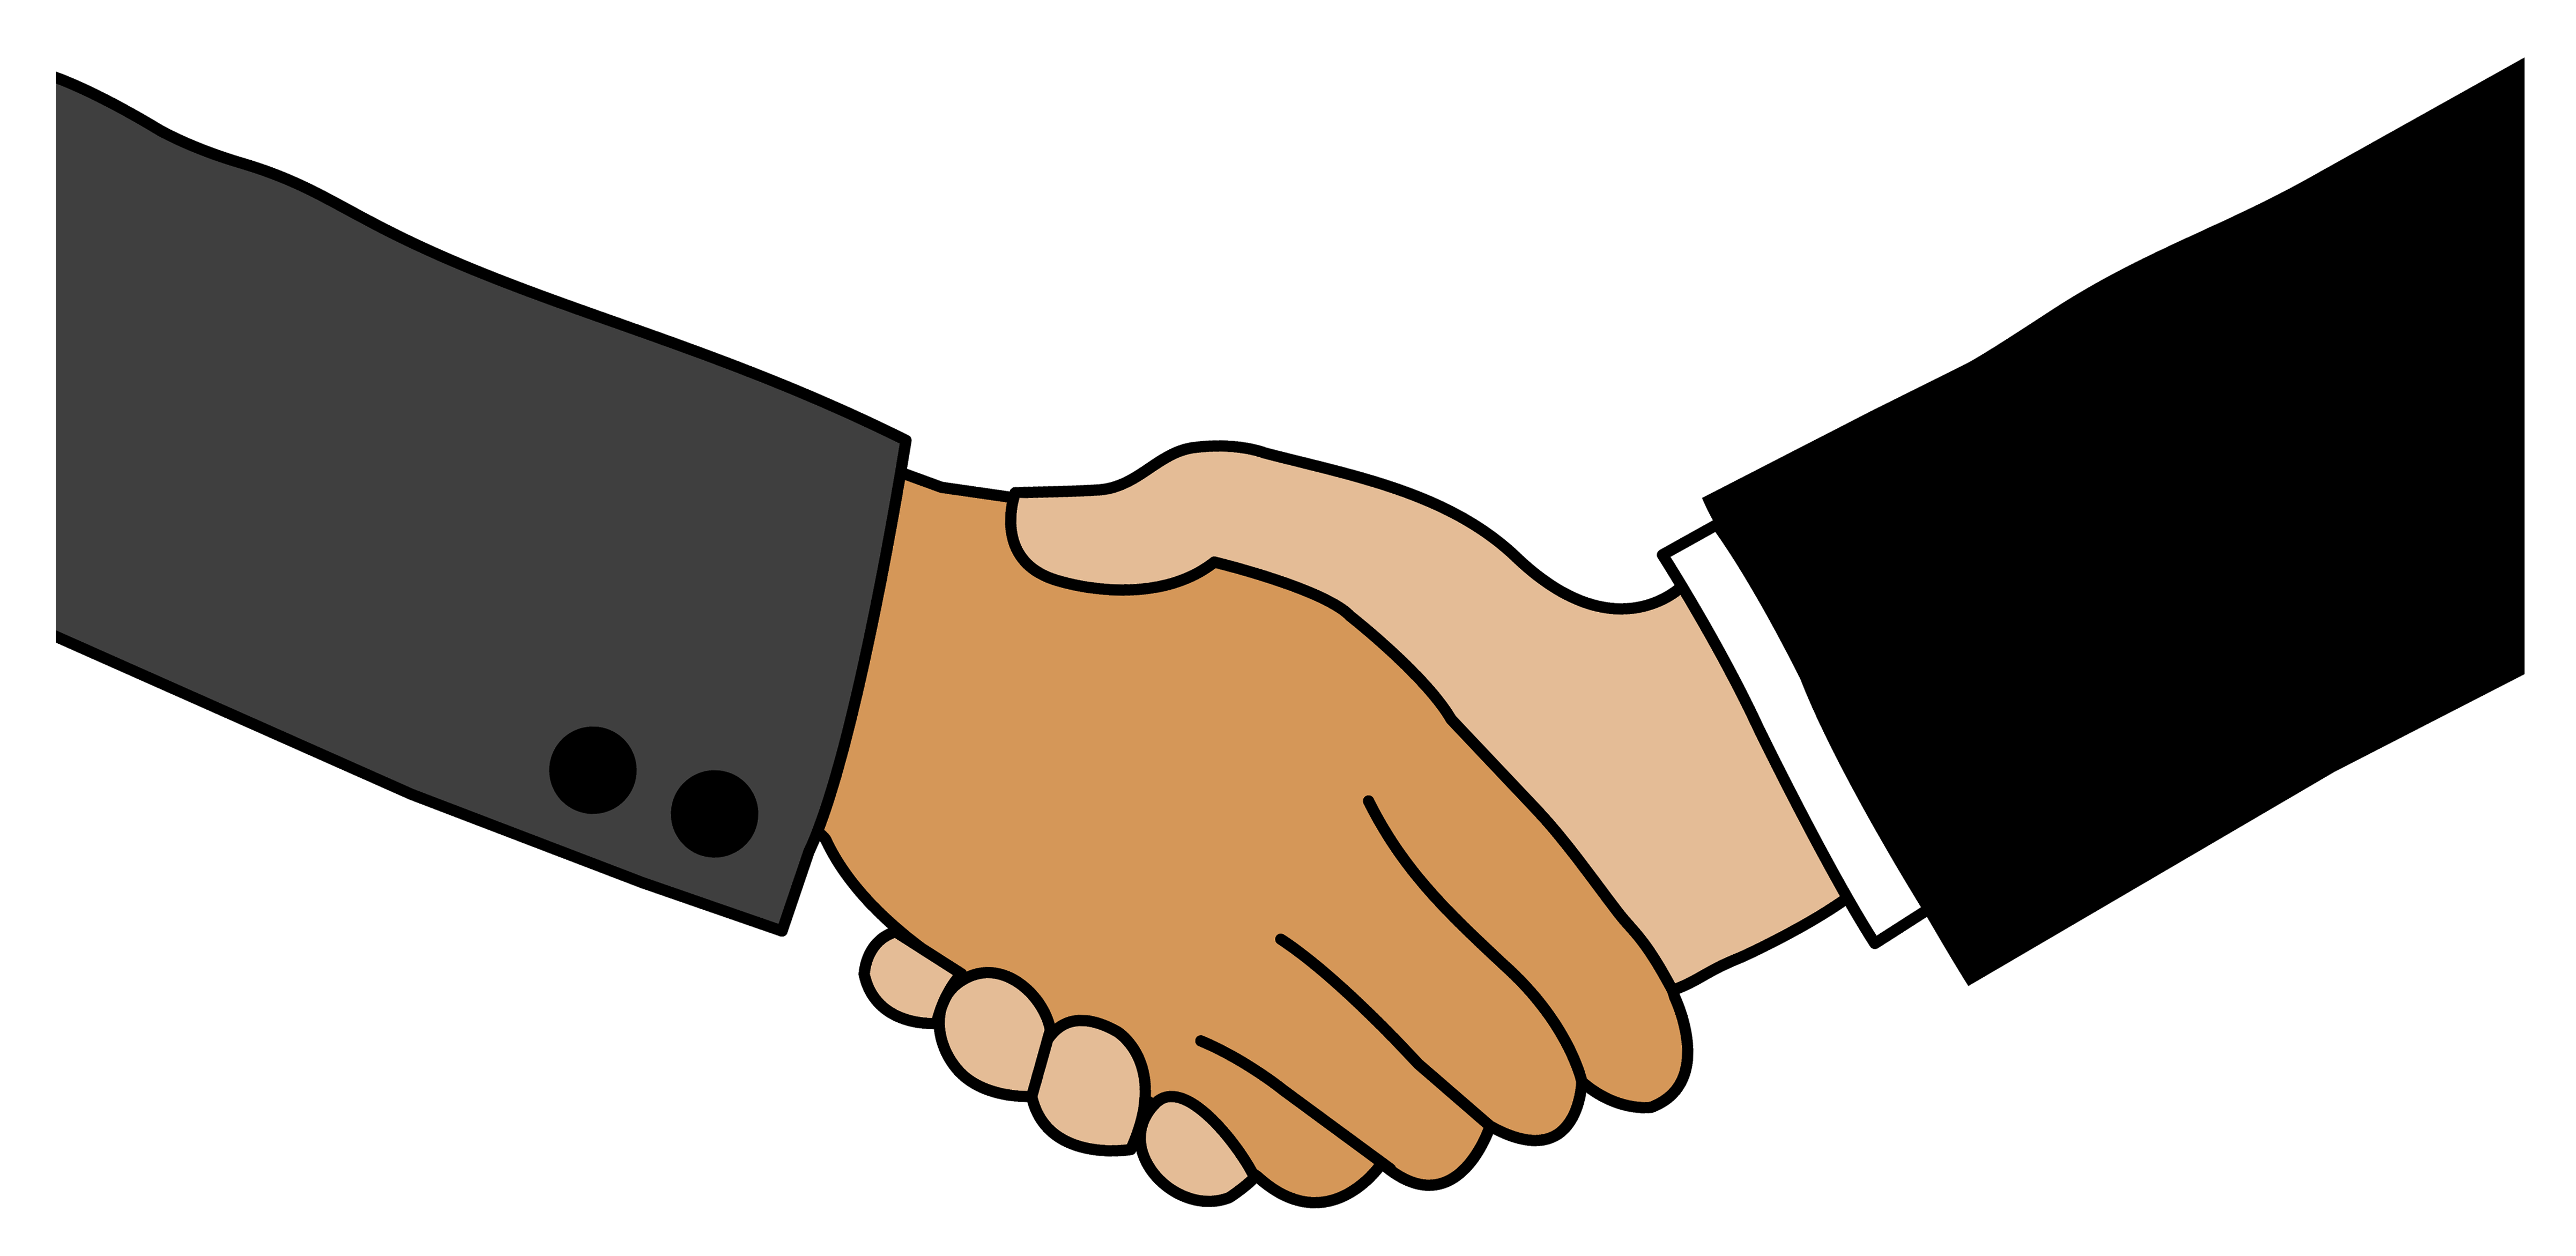 Free Shaking Hands Cliparts, Download Free Clip Art, Free.